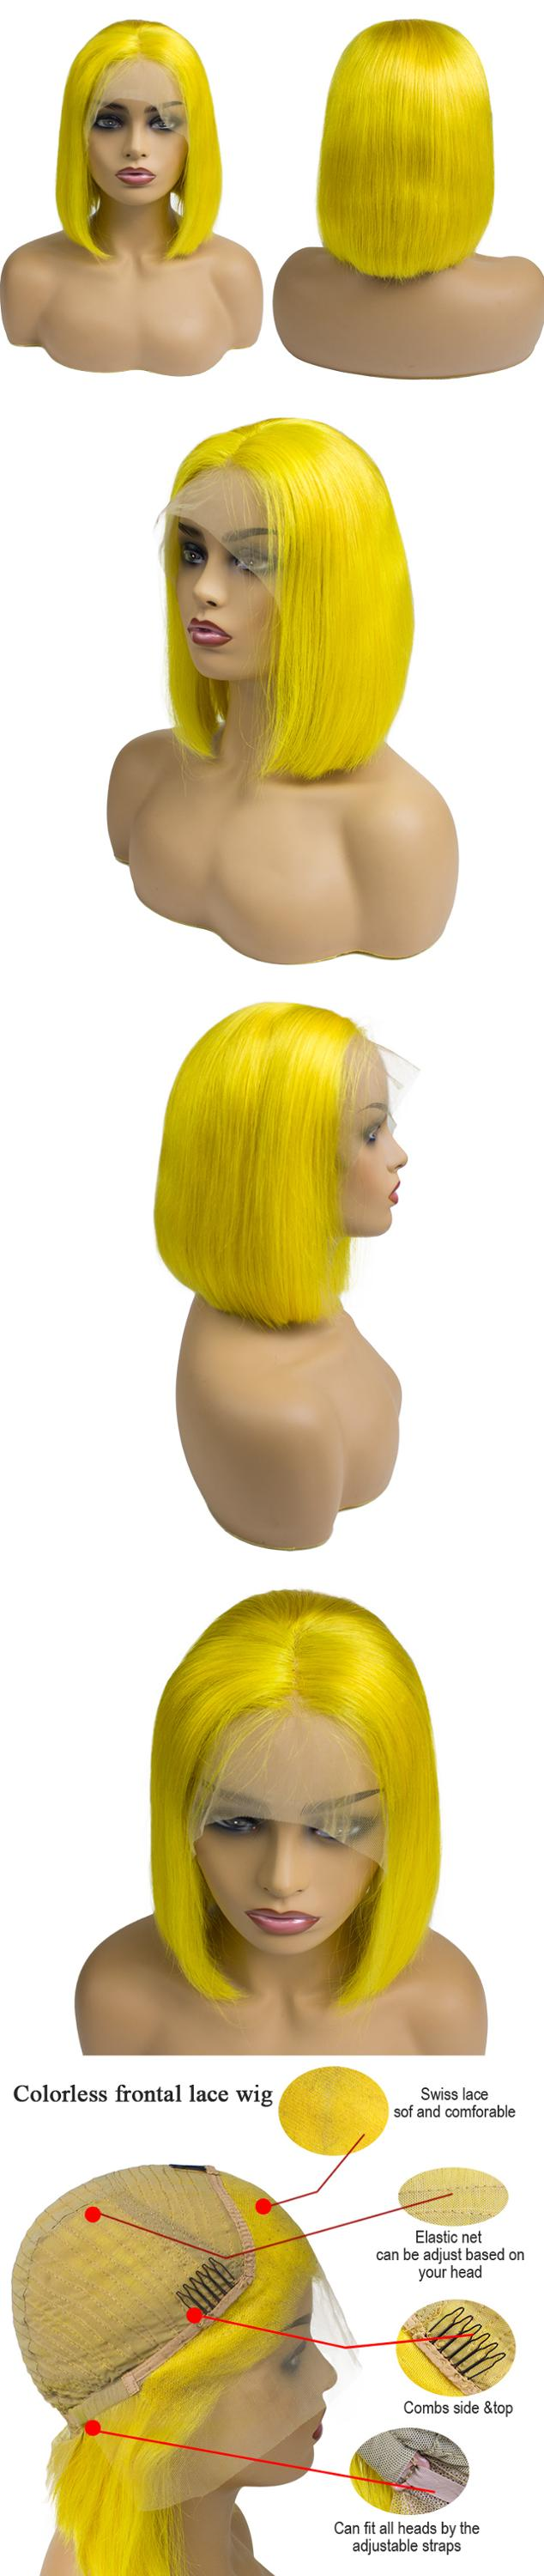 Morein Super Quality Yellow Short Bob Front Lace Wigs 100% Virgin Human Hair No Synthetic Hair Wig Bulk Vendors